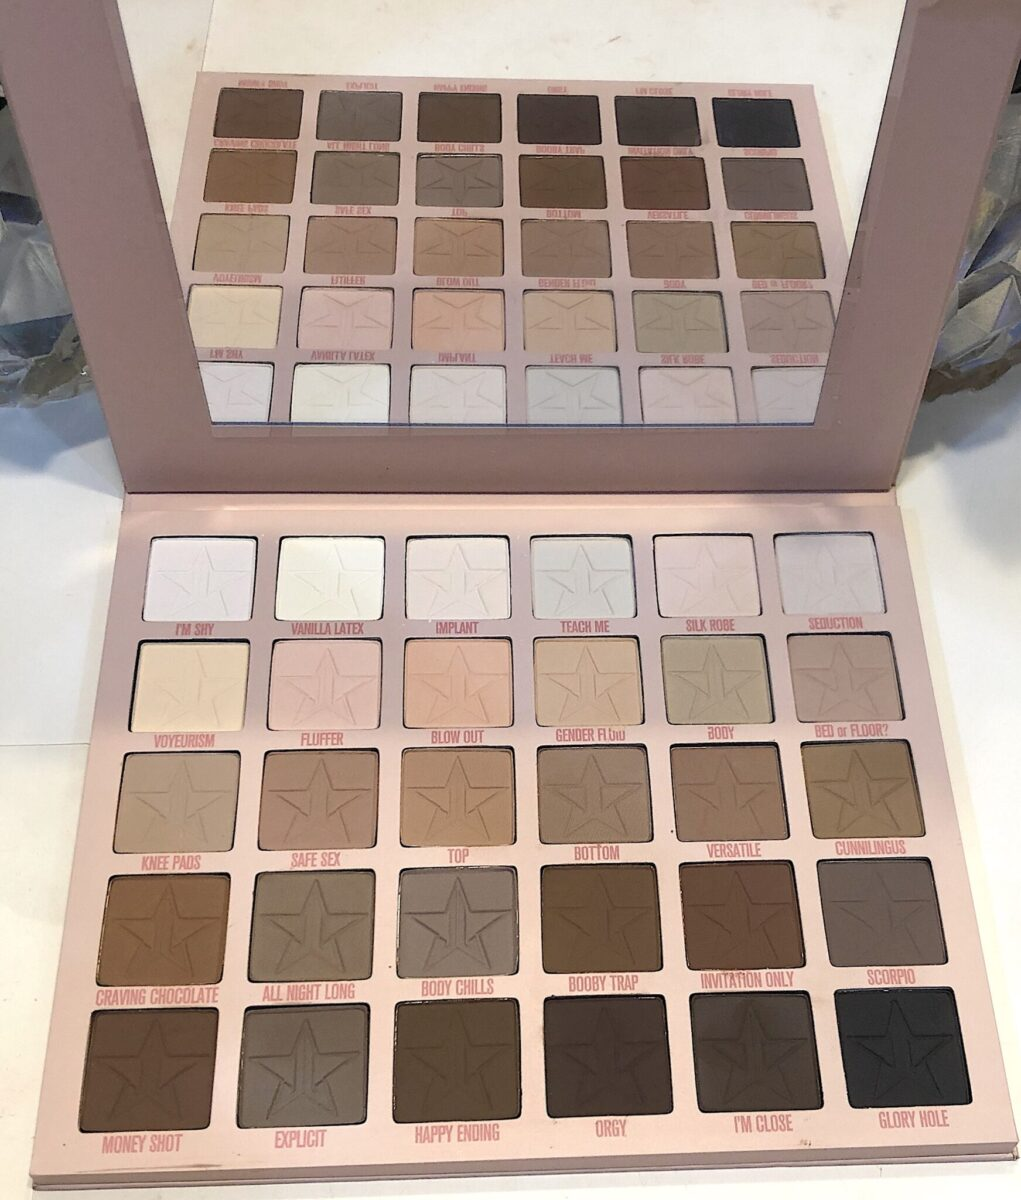 INSIDE THE JEFFREE STAR ORGY PALETTE